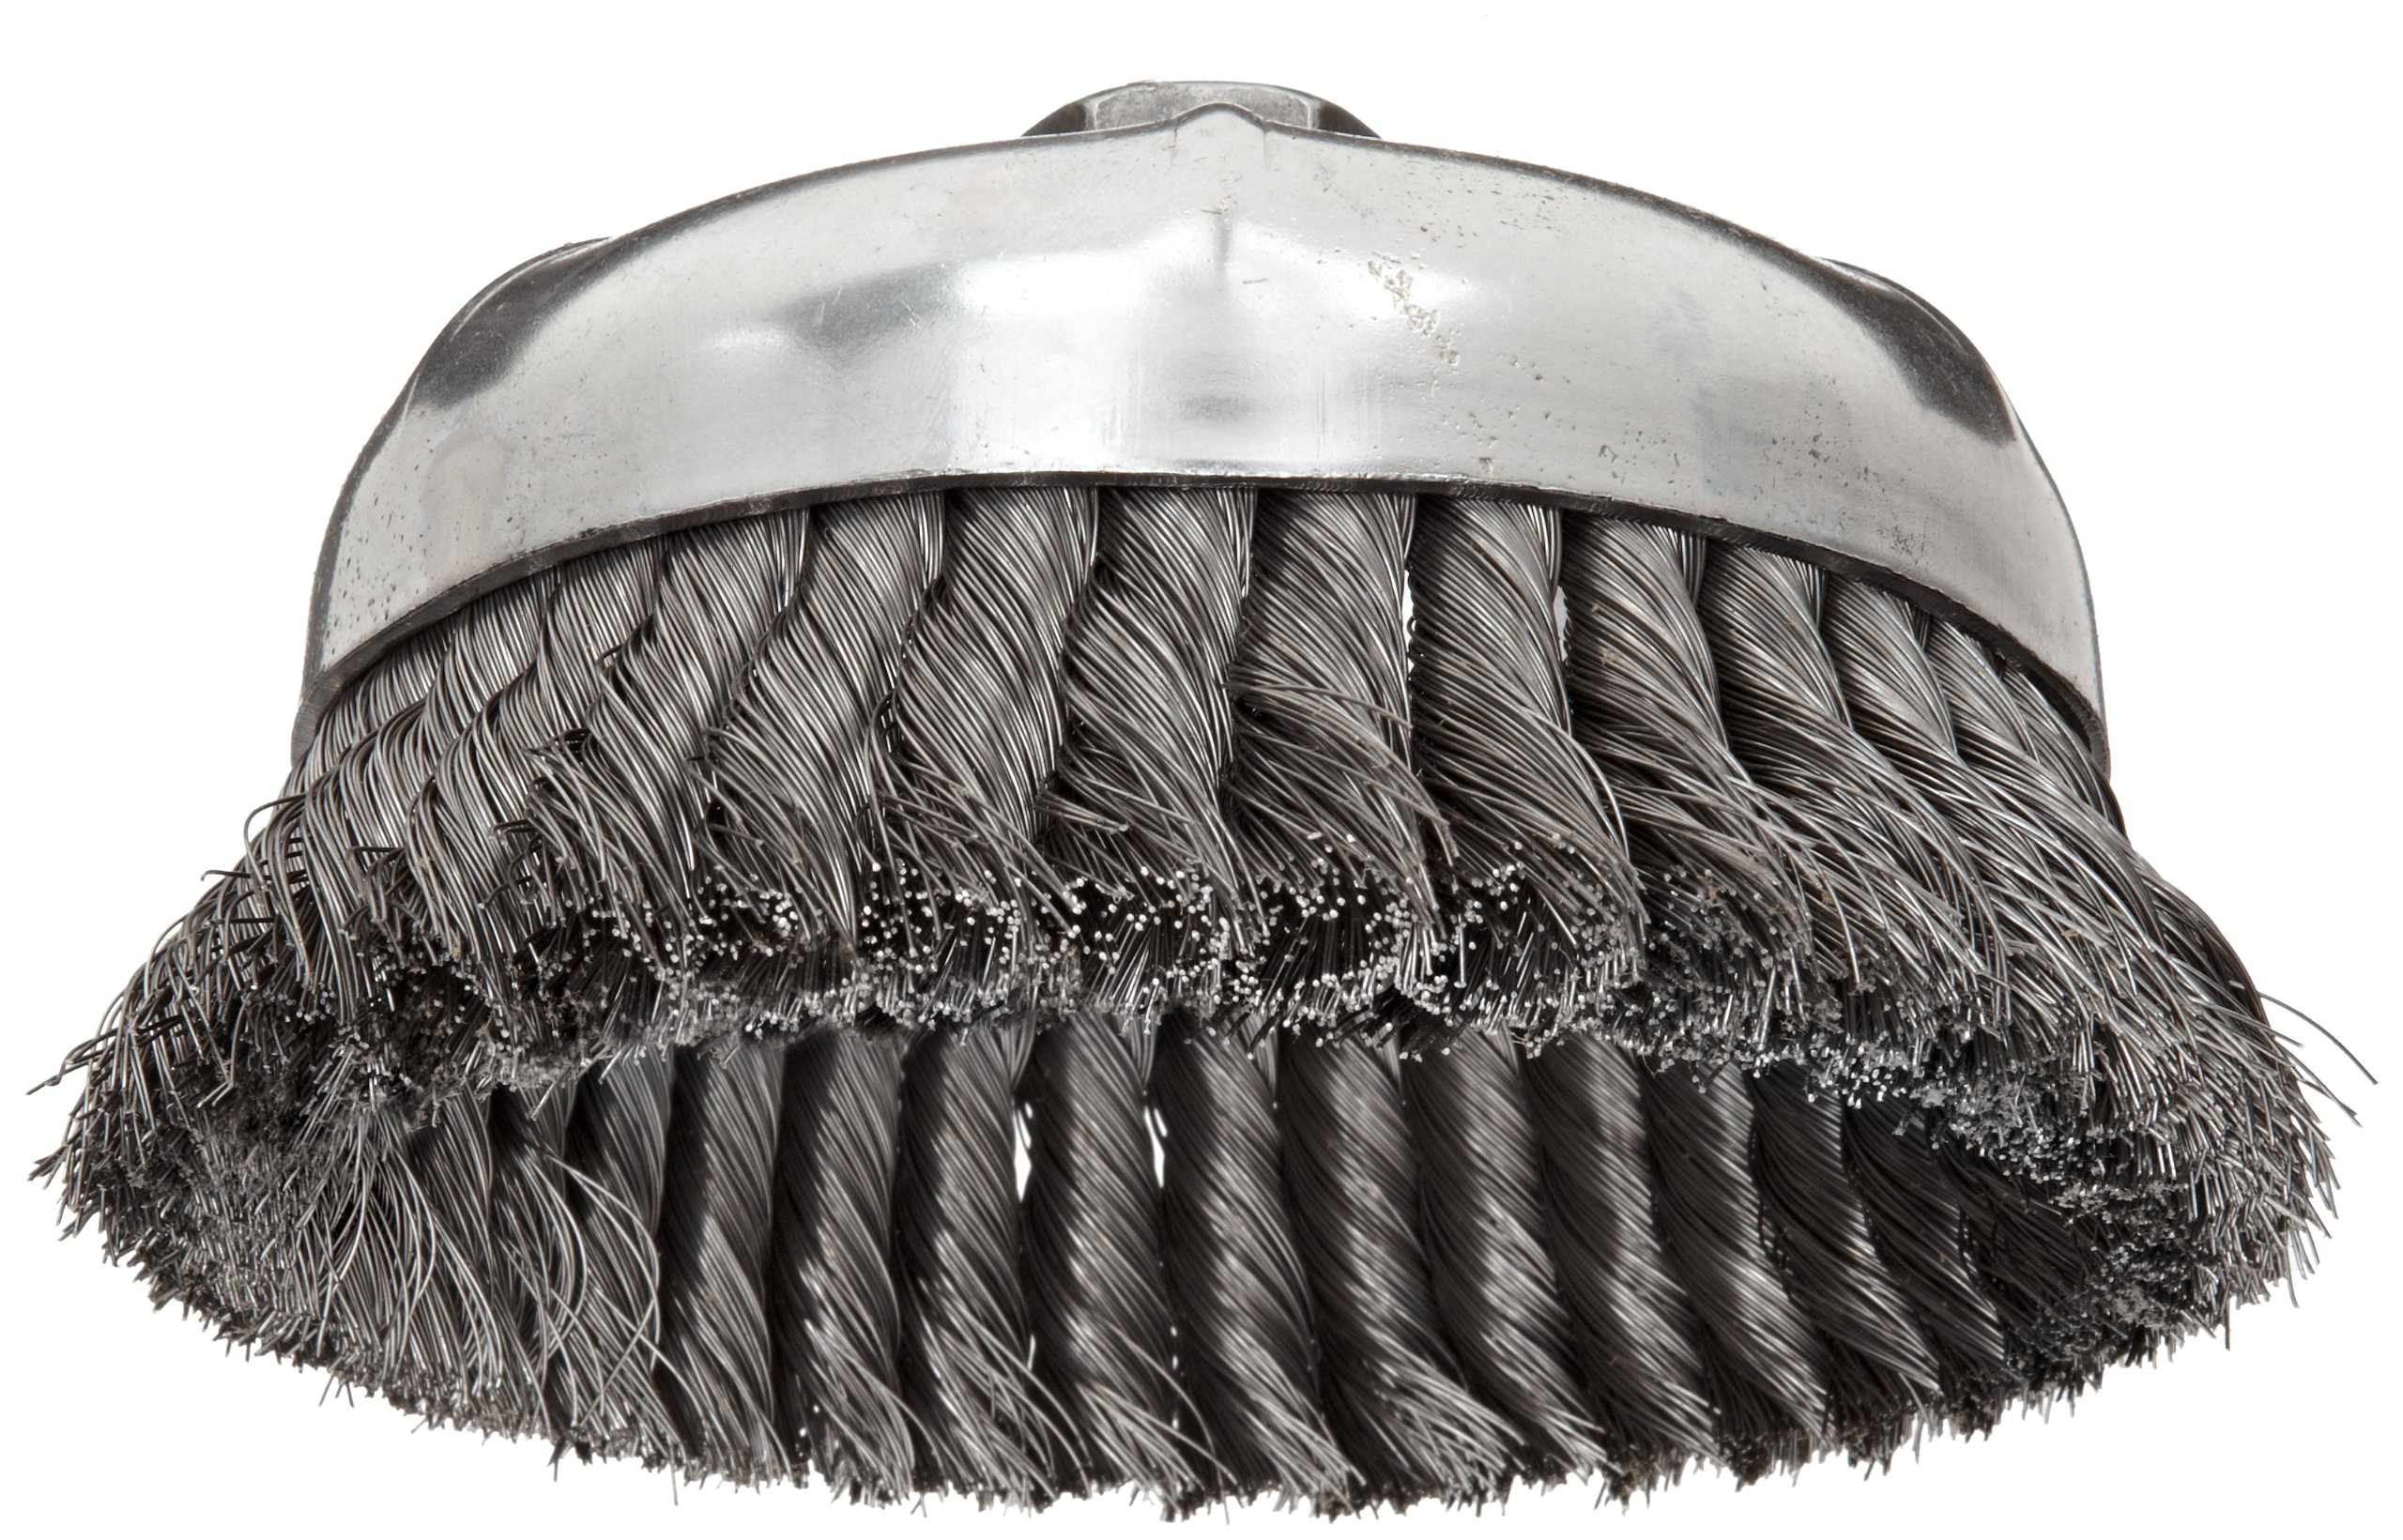 Weiler Wire Cup Brush, Threaded Hole, Steel, Partial Twist Knotted, Single Row, 6'' Diameter, 0.014'' Wire Diameter, 5/8''-11 Arbor, 1-3/8'' Bristle Length, 6600 rpm (Pack of 1)